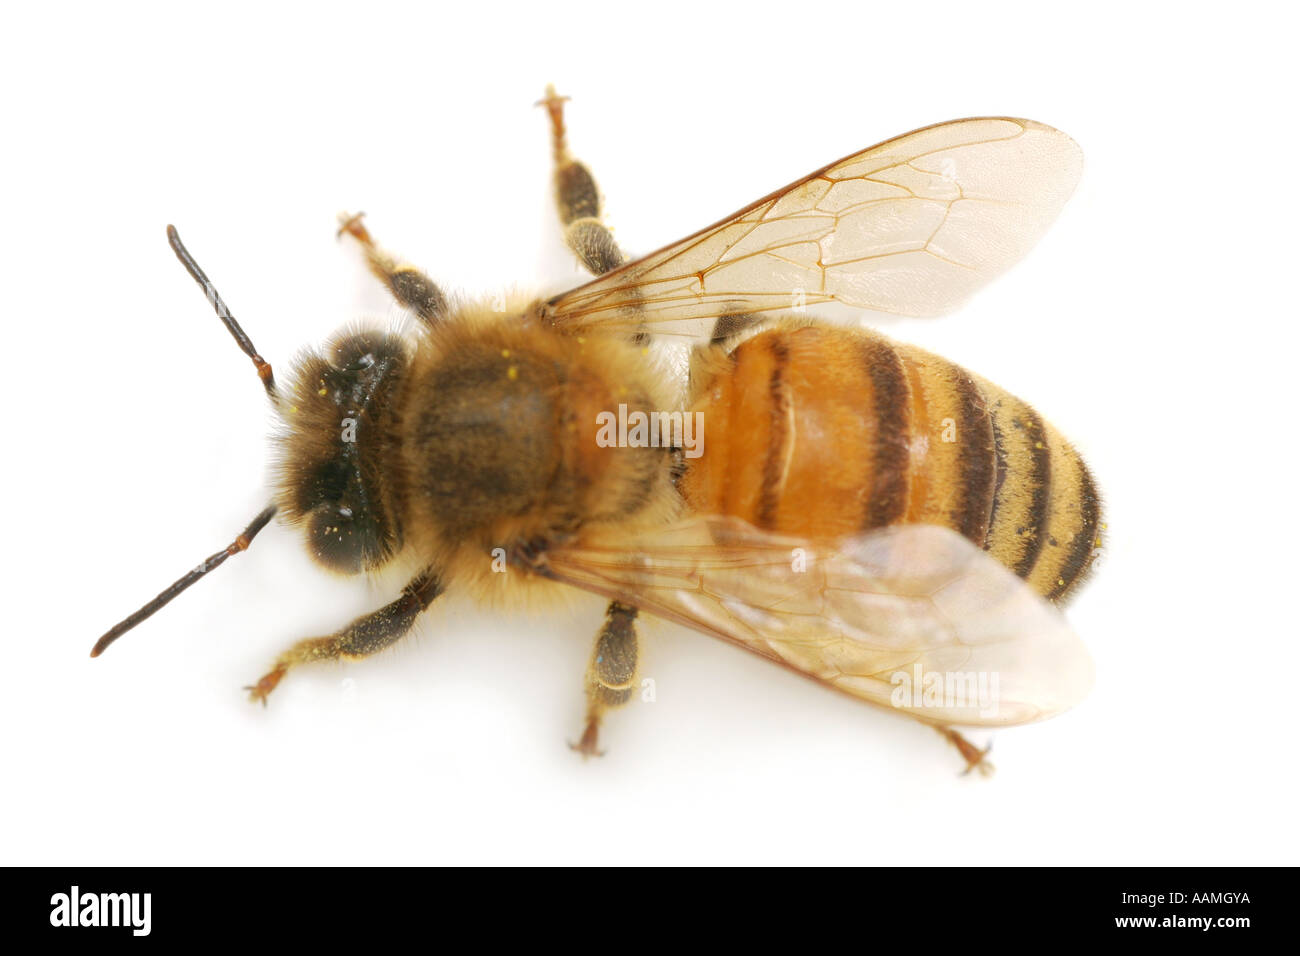 Close-up of a honeybee from above, on white background - Stock Image